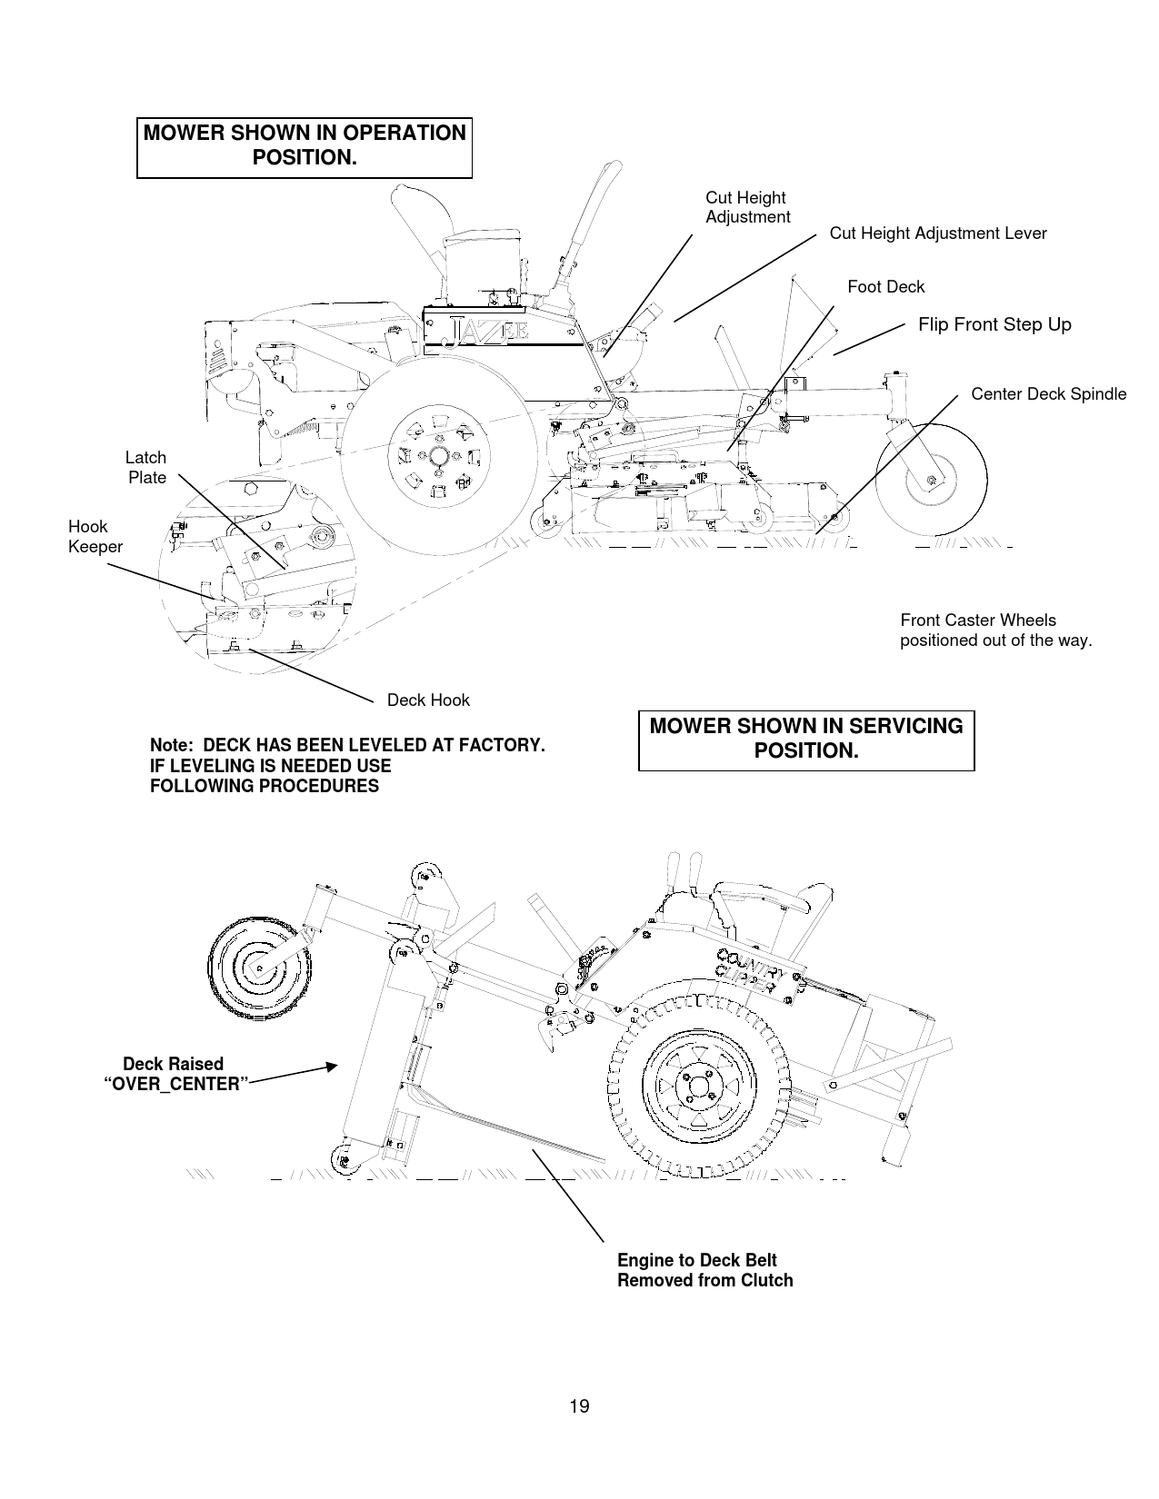 page_19  Cherokee Fuse Box Diagram on 89 cherokee firing order, 89 cherokee console, 89 cherokee roof rack, 89 cherokee blower motor, 89 cherokee fuel pump relay, 89 cherokee vapor canister, 89 cherokee ignition switch, 89 cherokee brake proportioning valve,